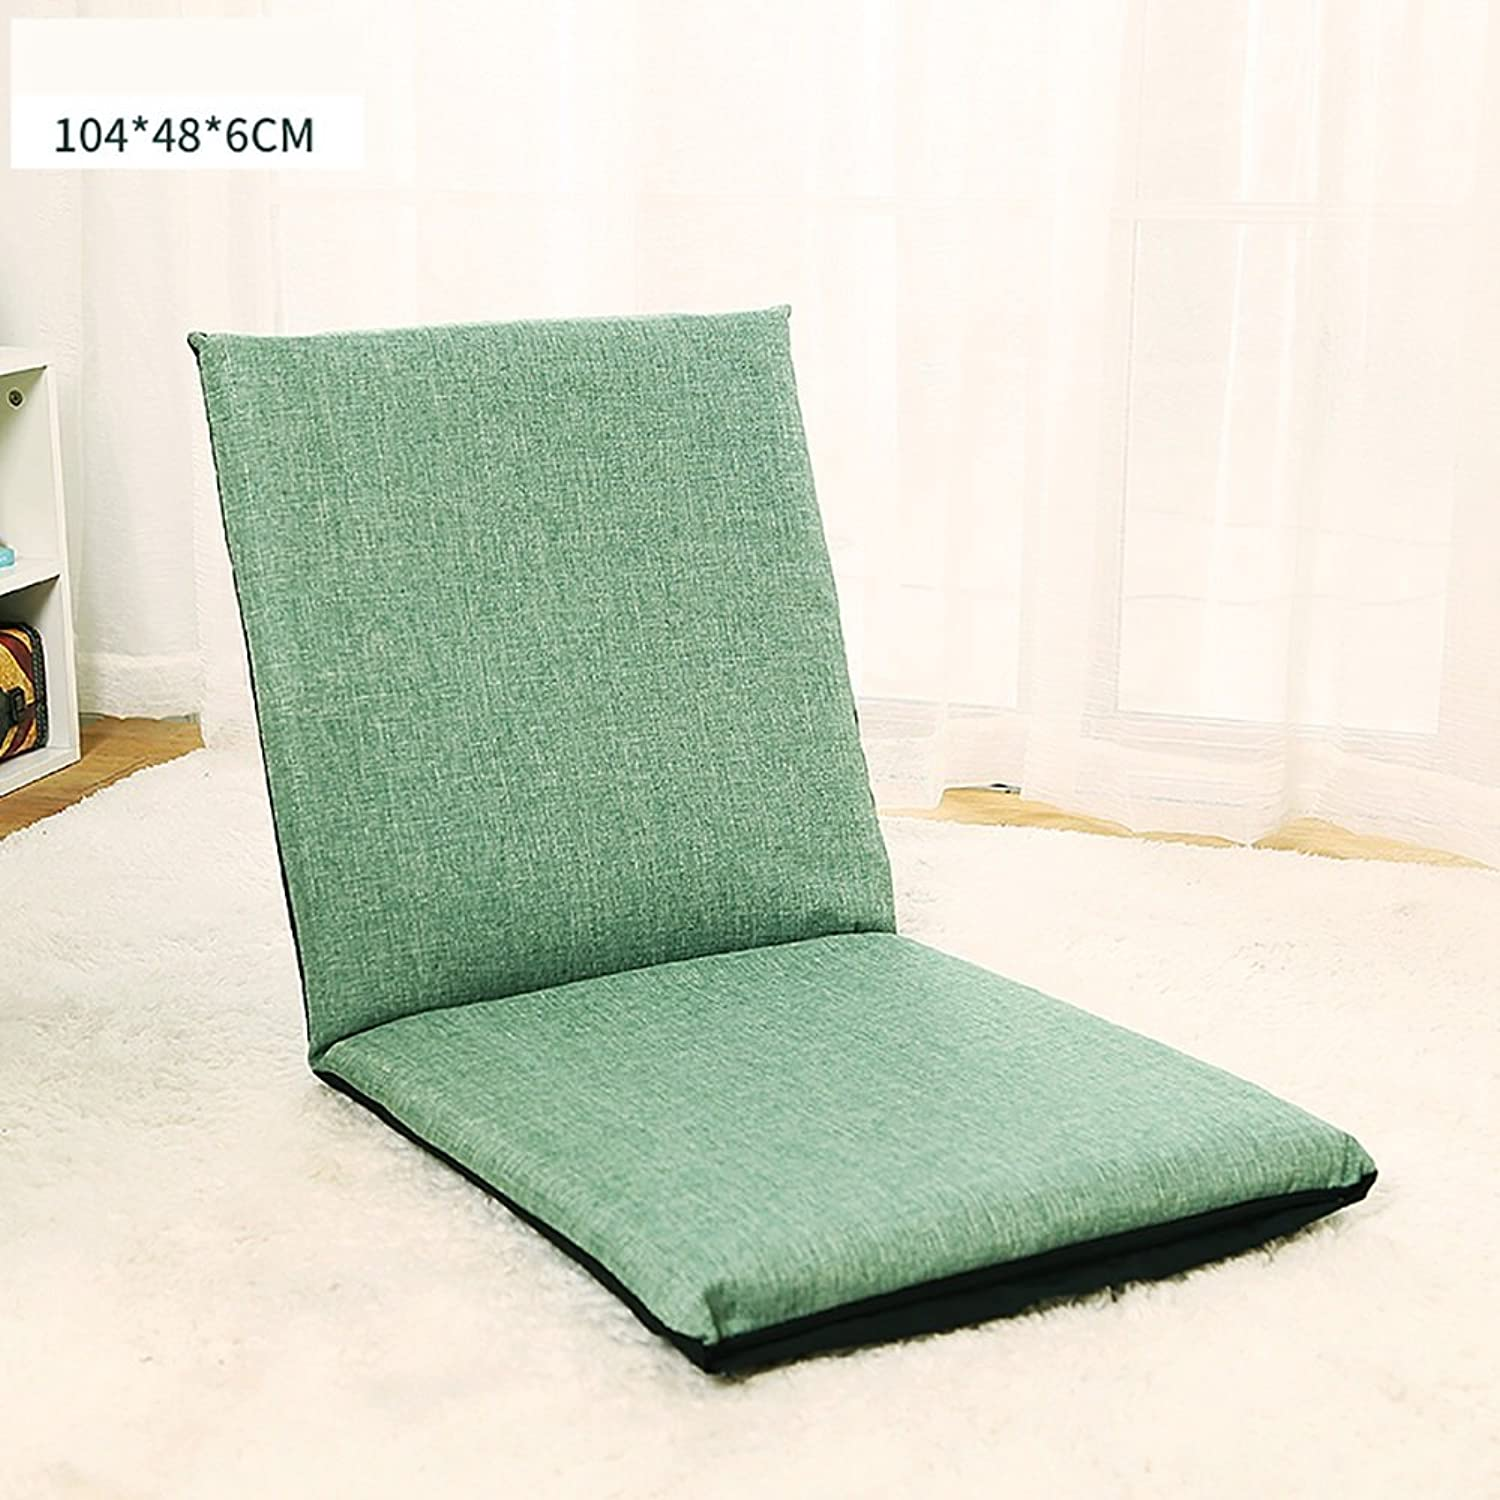 Comfortable Sofa, Bedroom Folding Sofa Bed Backrest Chair Single Chair Cushion Pastoral Style Floor Sofa Chair (color   2 , Size   78  38  5cm)